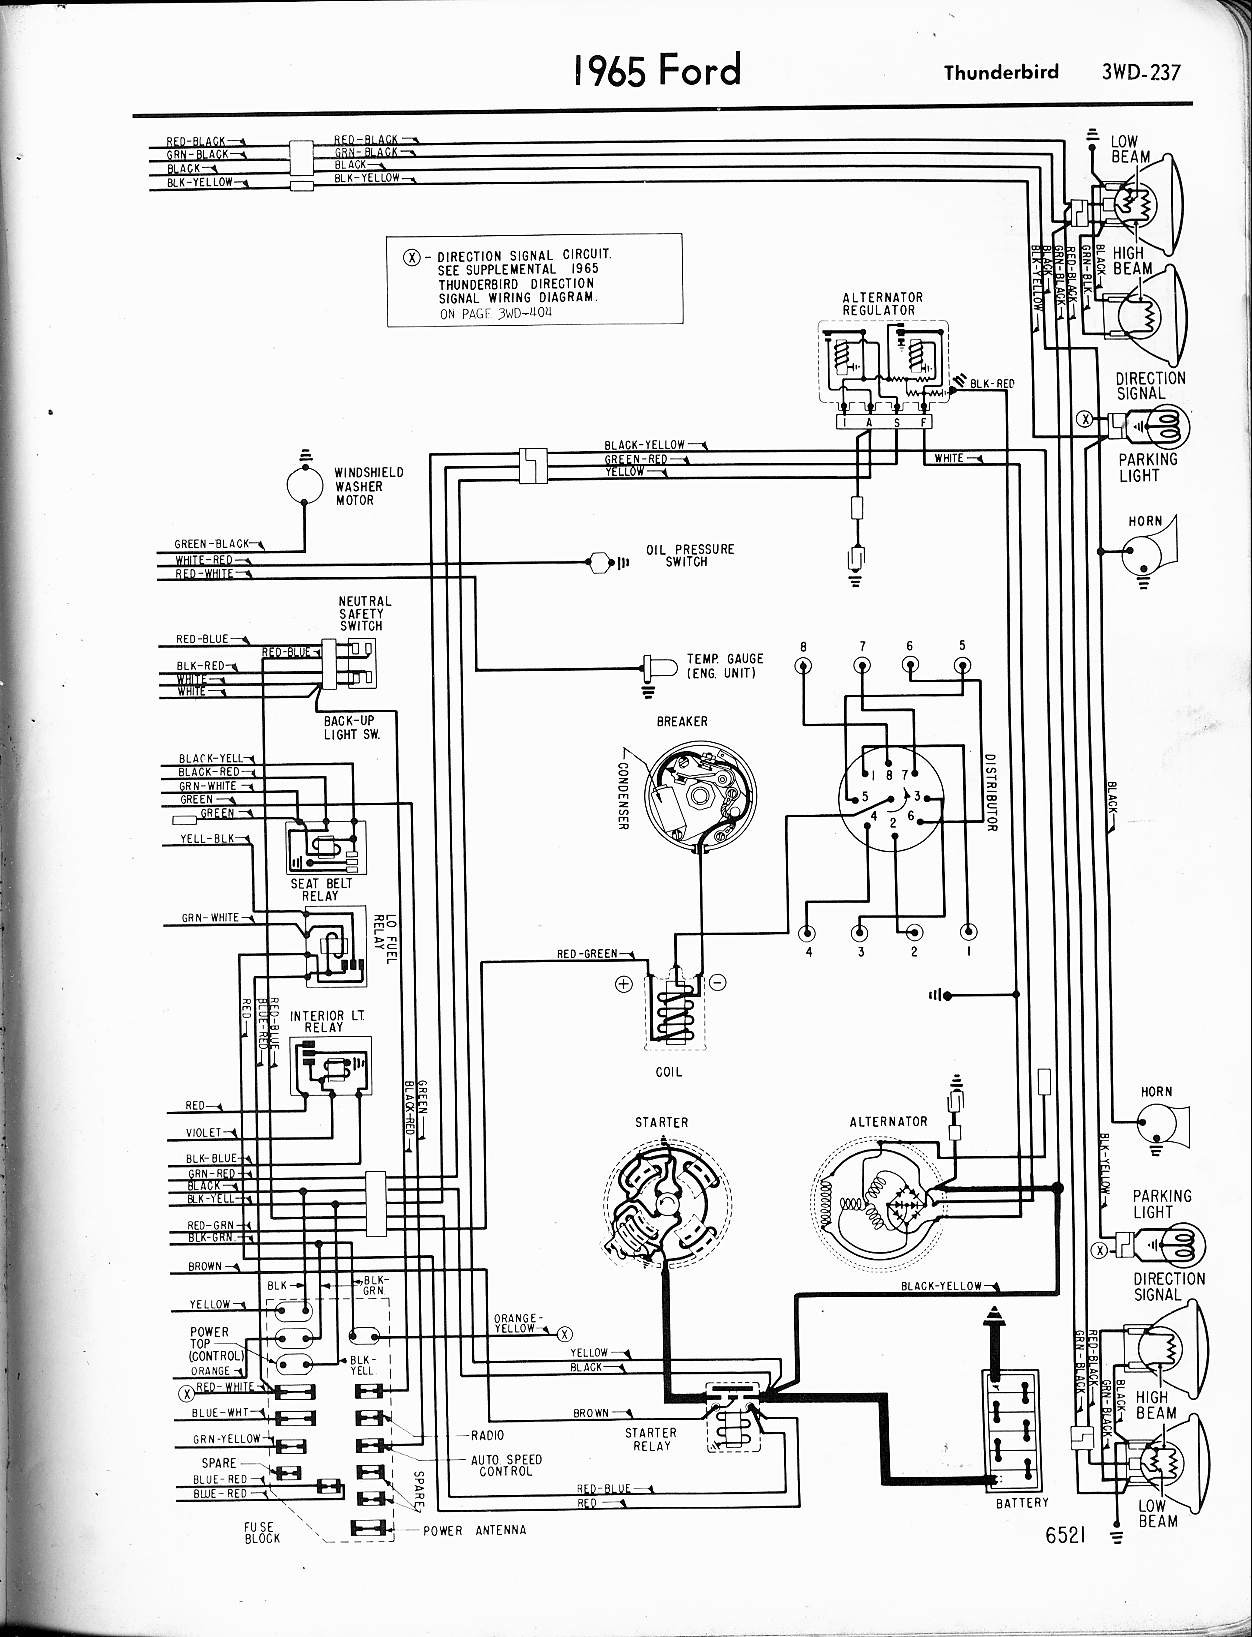 1979 ford thunderbird wiring diagram example electrical wiring rh  emilyalbert co Ford Electrical Wiring Diagrams 1977